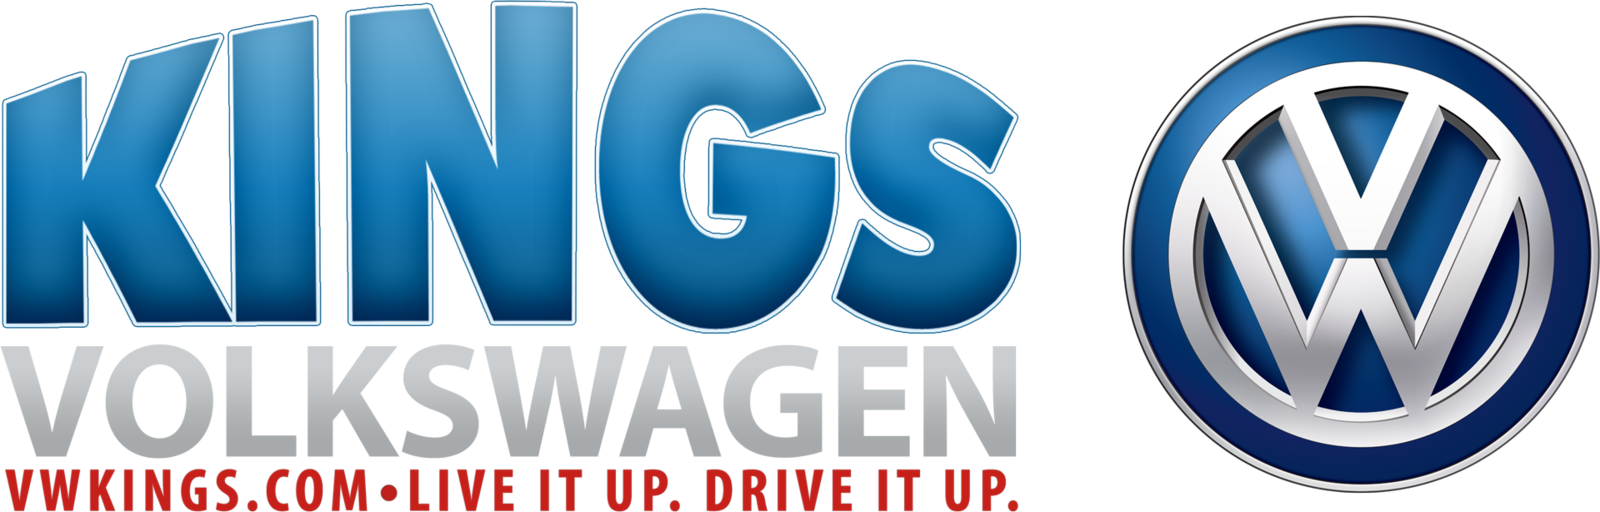 Kings Volkswagen Cincinnati Oh Read Consumer Reviews